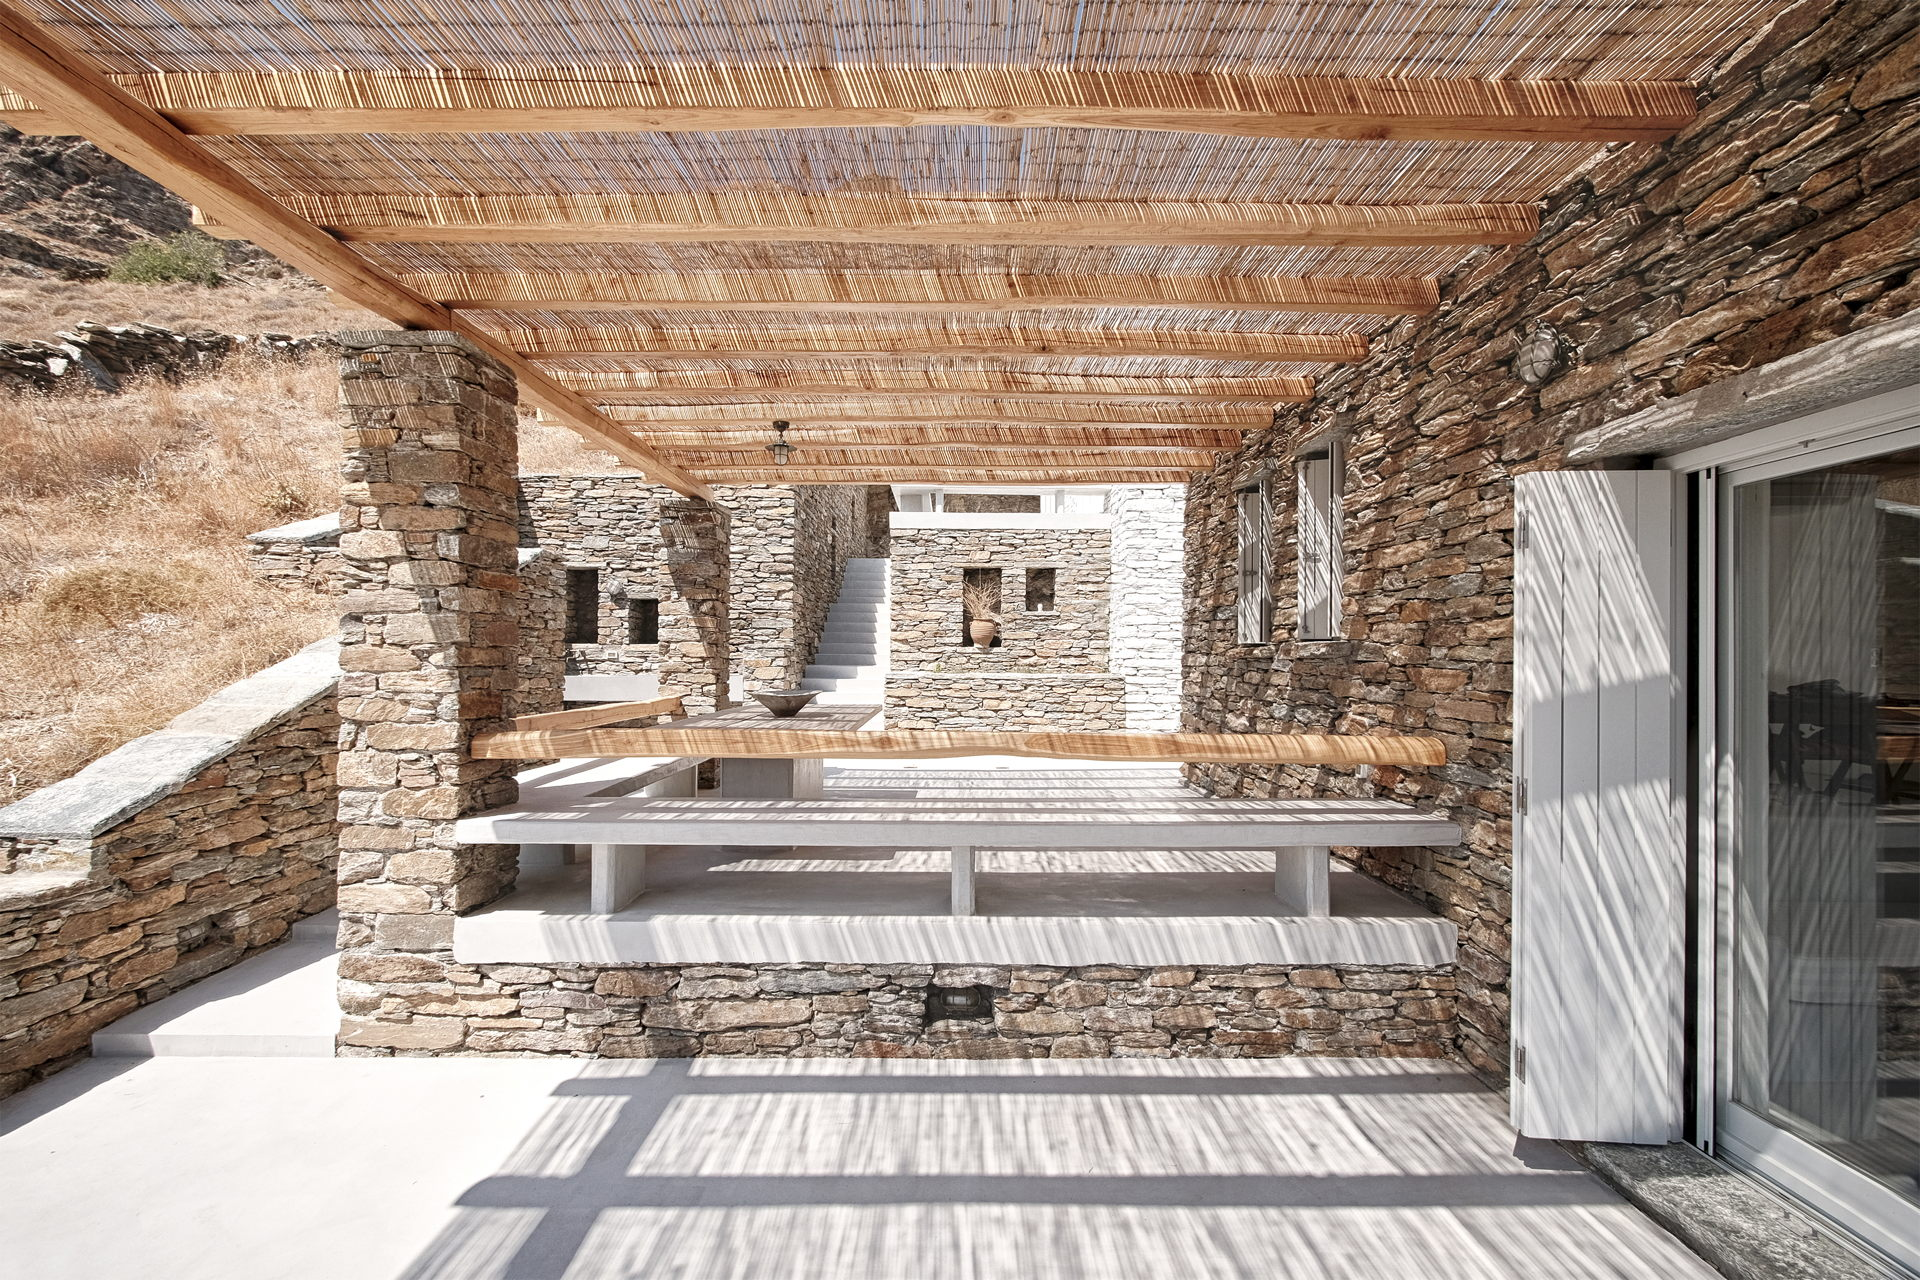 Cometa Architects: Rocksplit, house on the island of Kea in the Cyclades